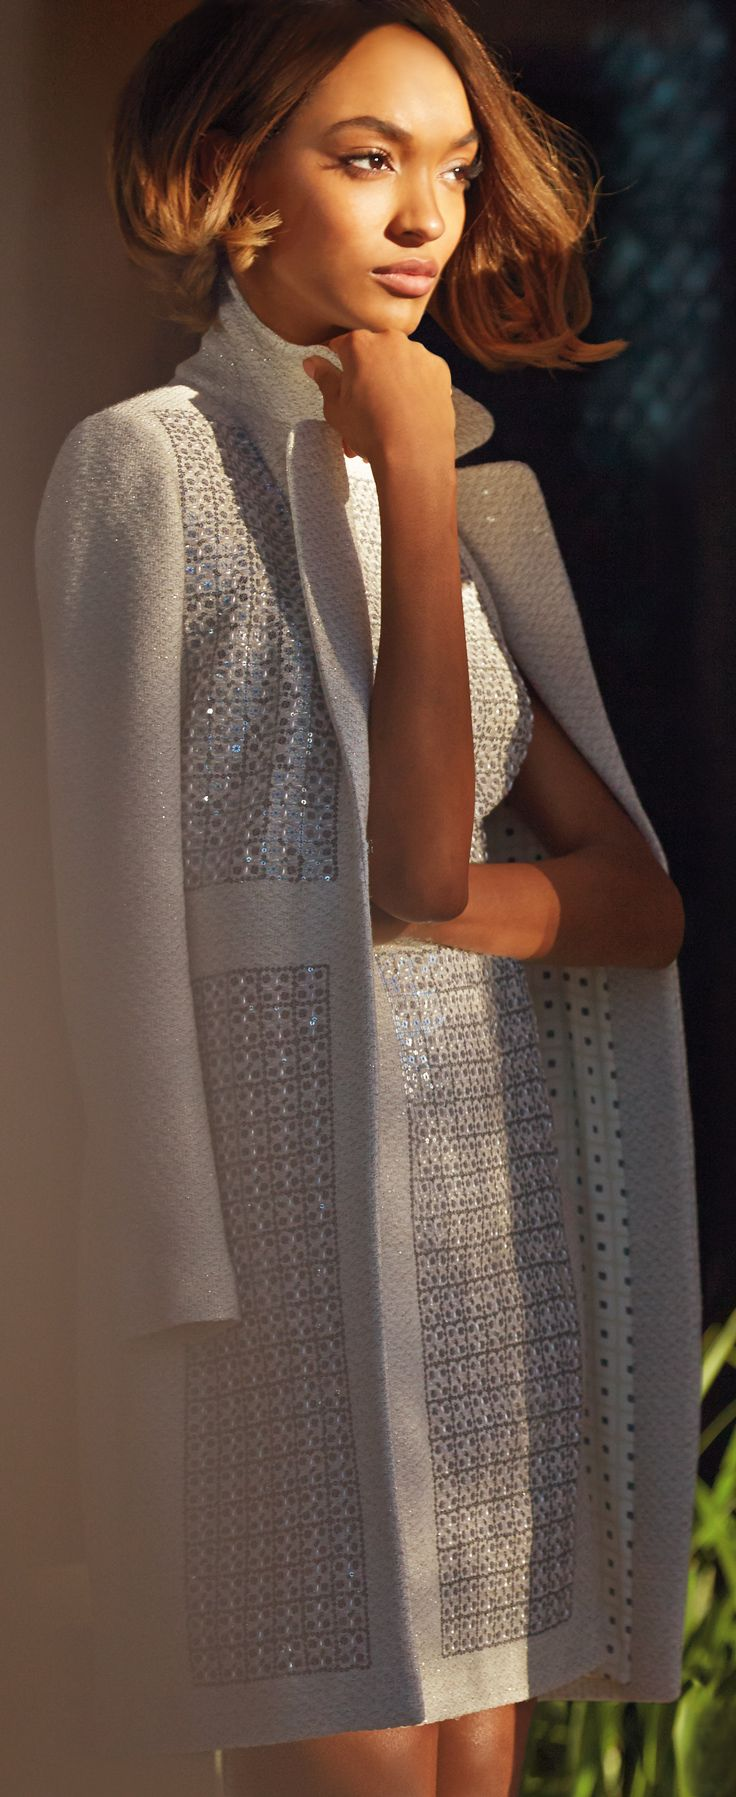 StJohnKnits couture cream topper w/ sequin detail & patterned lining, with matching shift dress. PreFall 2015 Collection.